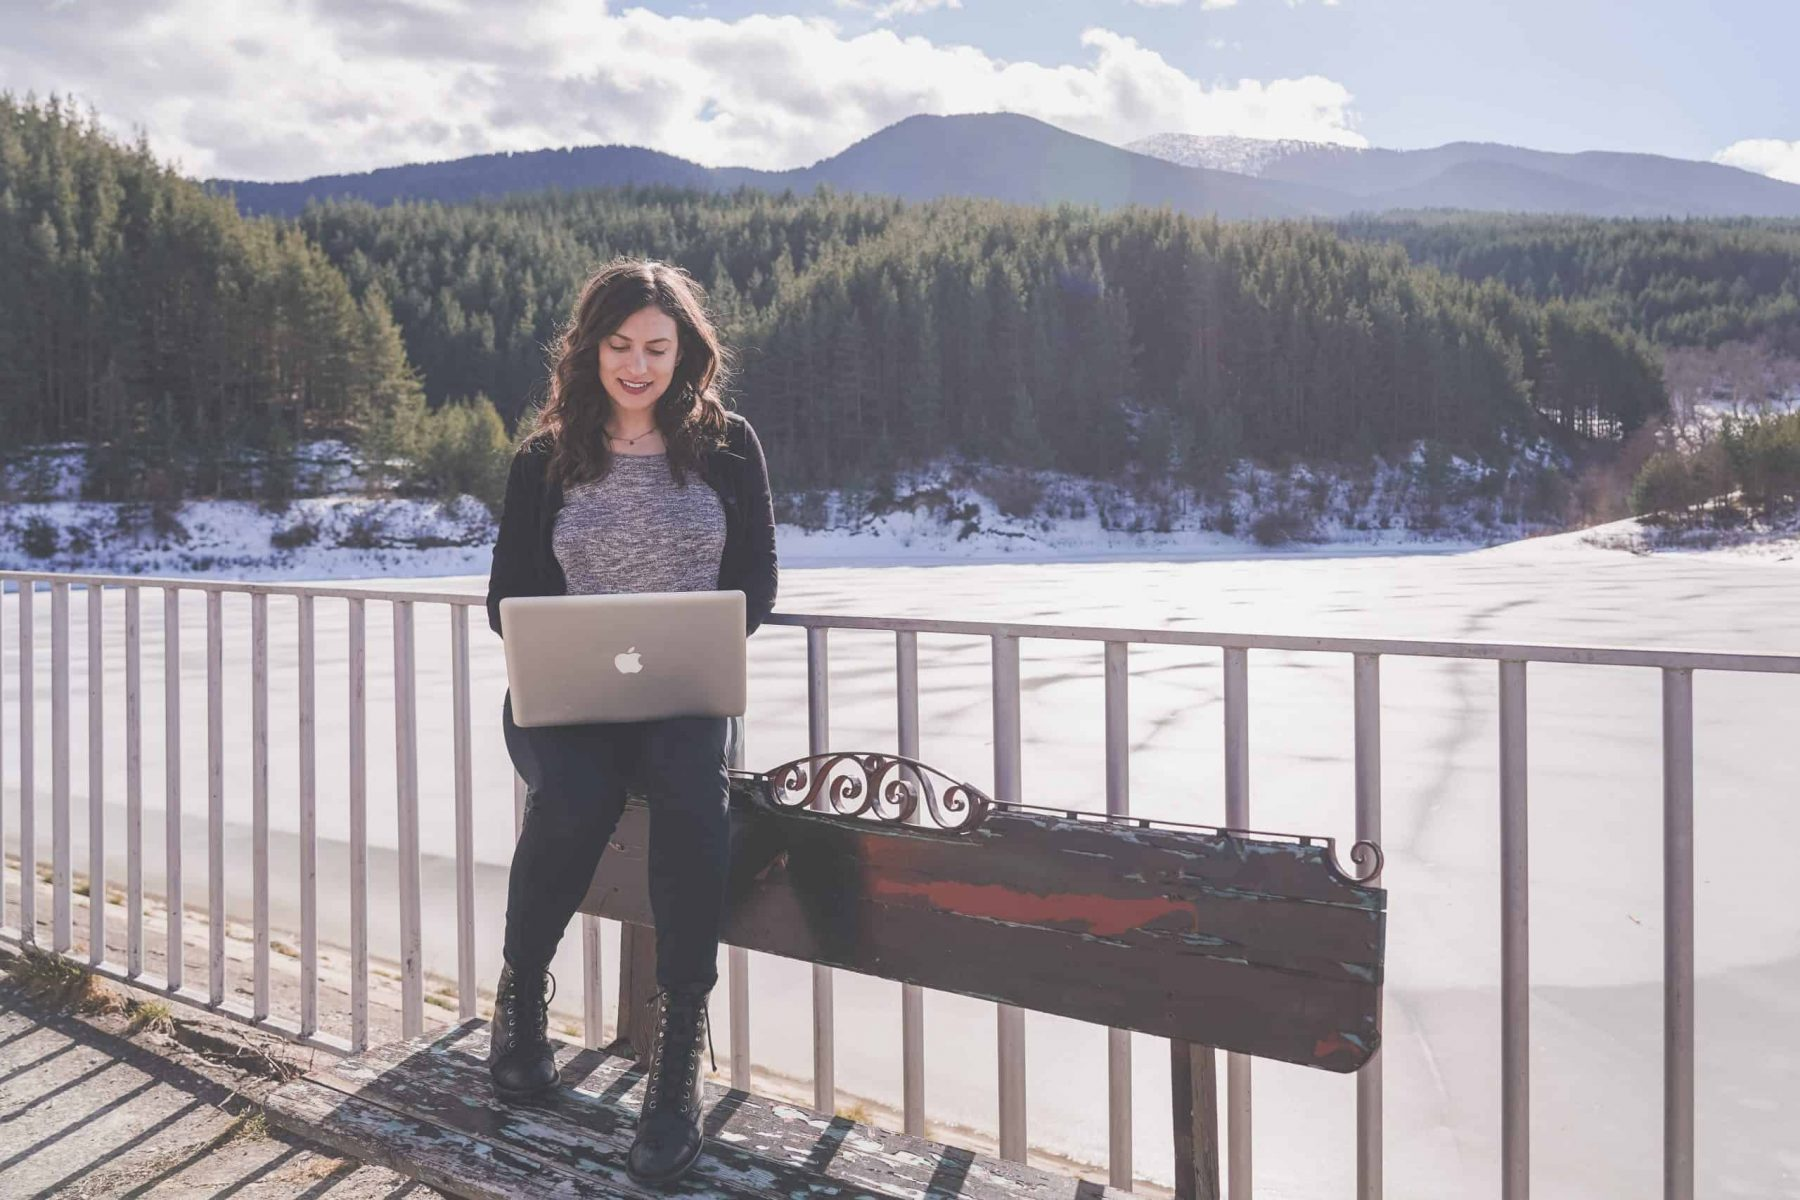 Digital nomad girl sitting on a bench with a computer above a lake surrounded by mountains